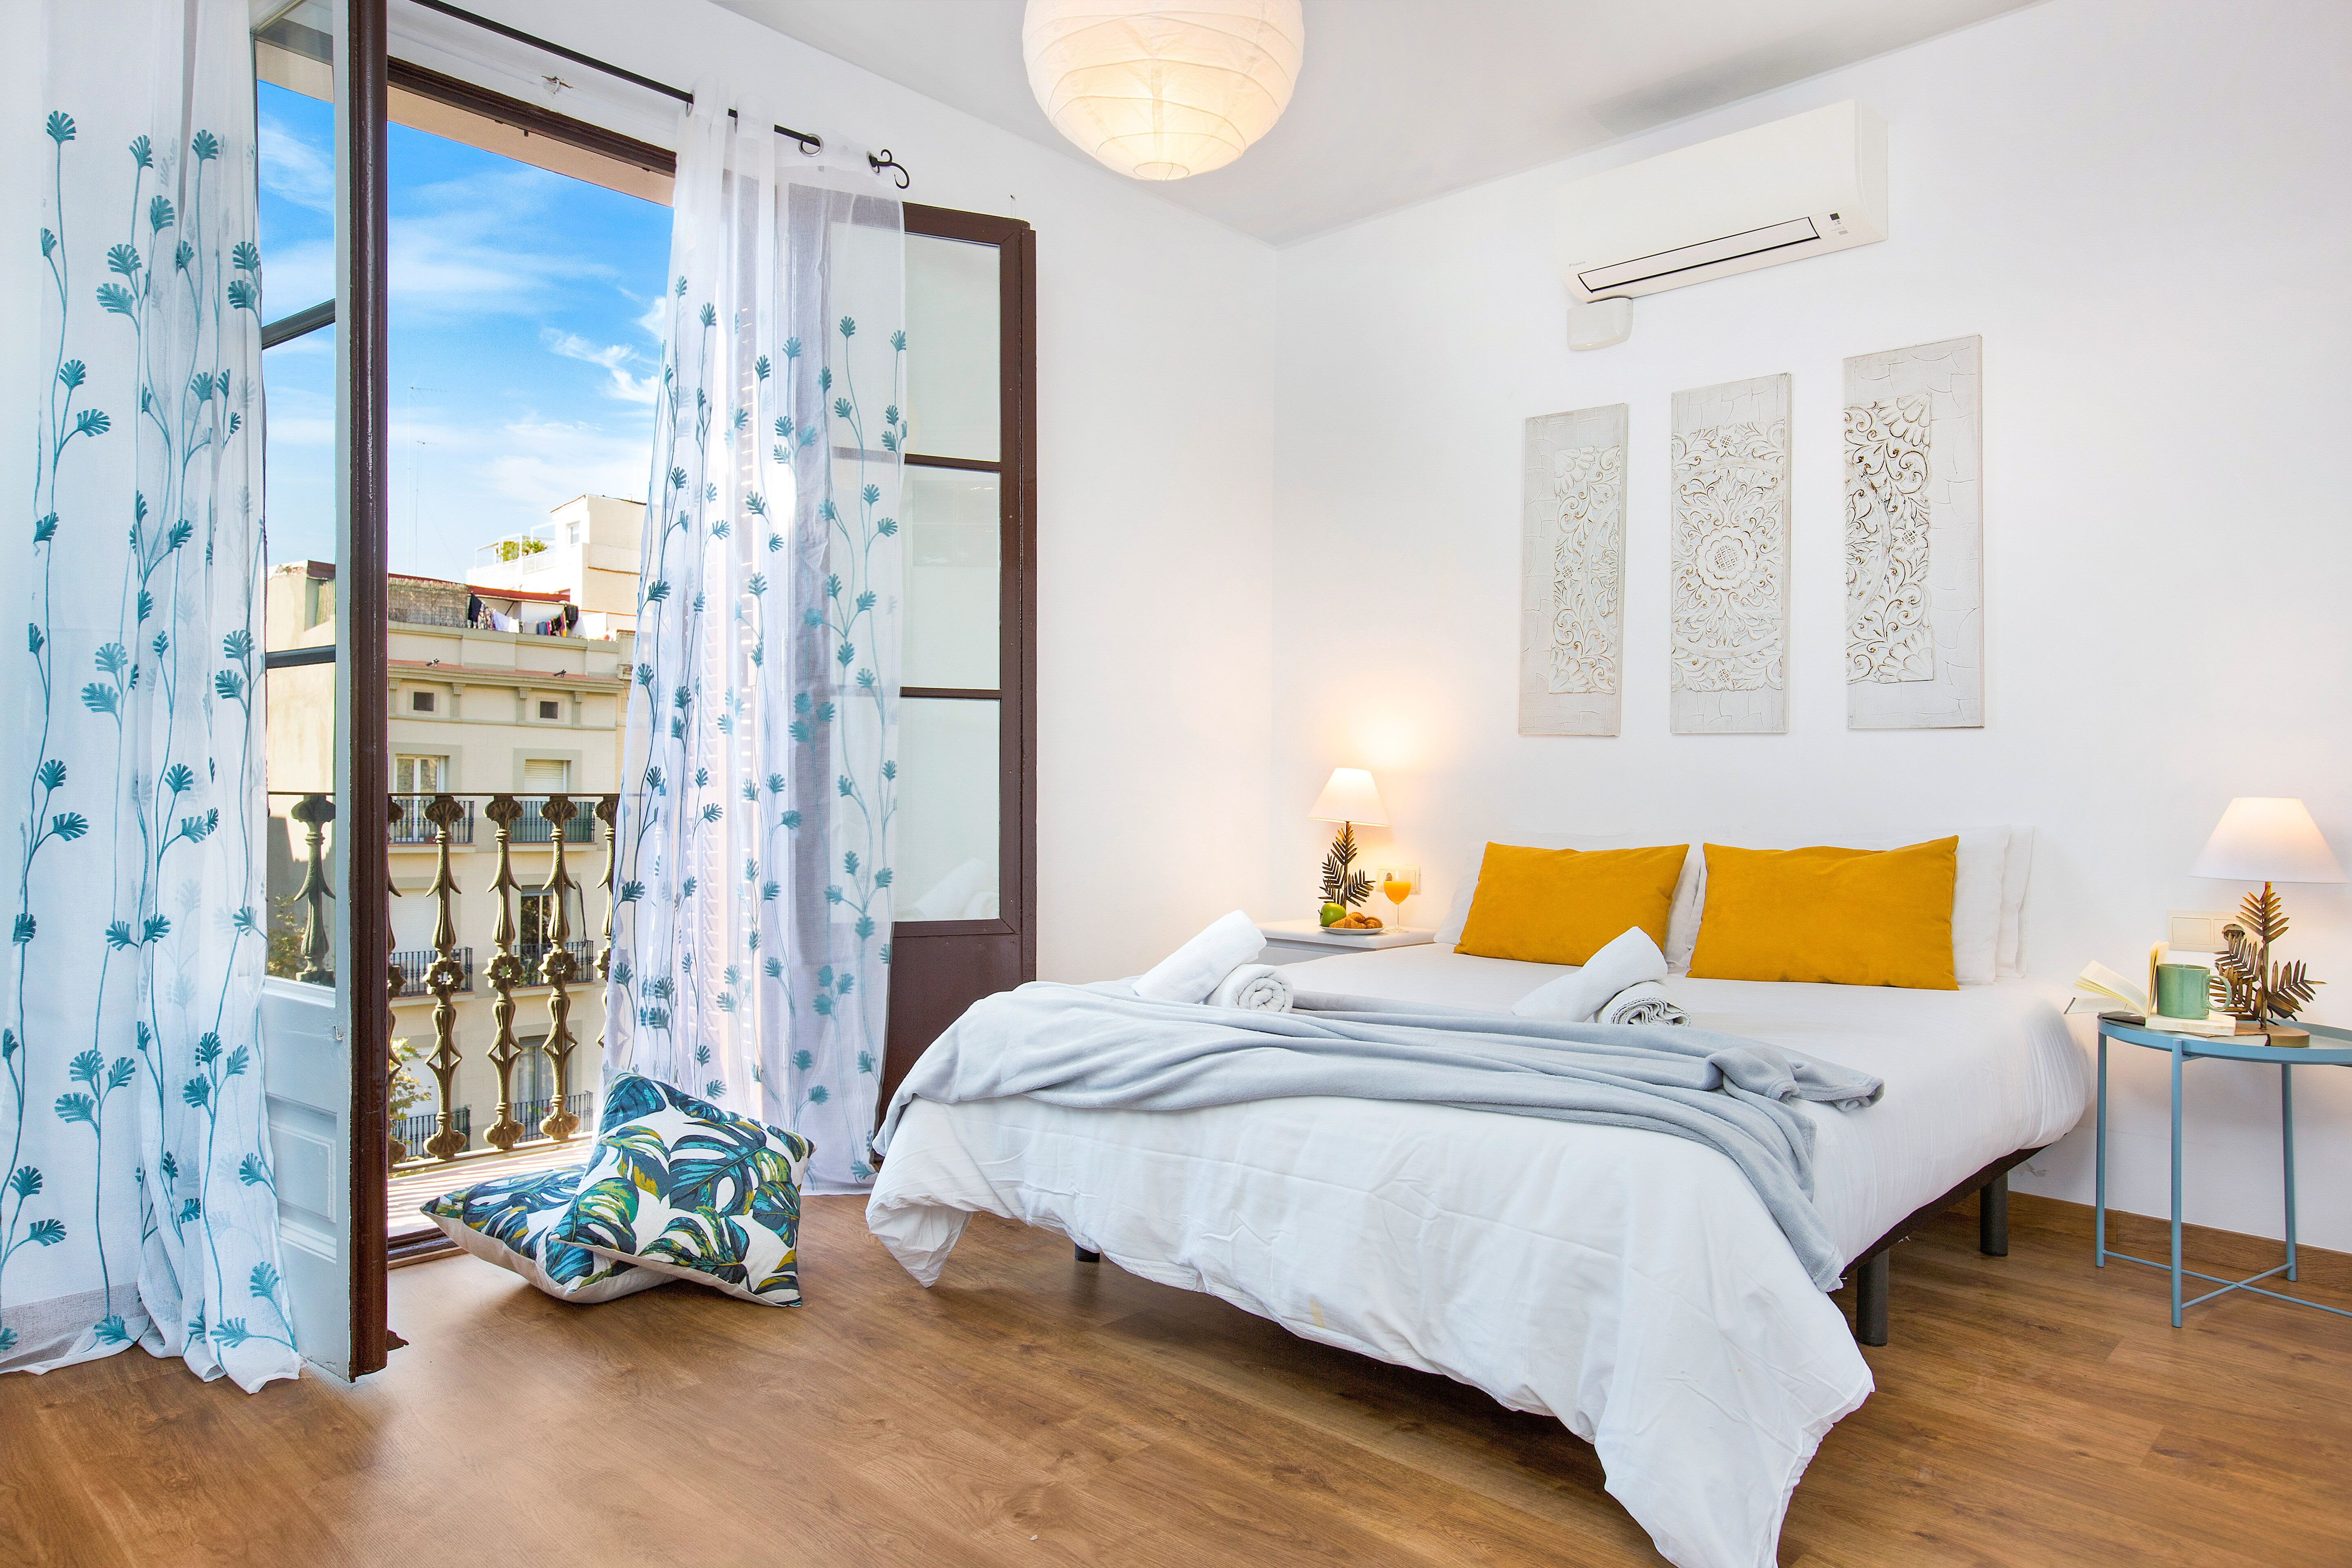 Decoration of touristic apartments in Barcelona